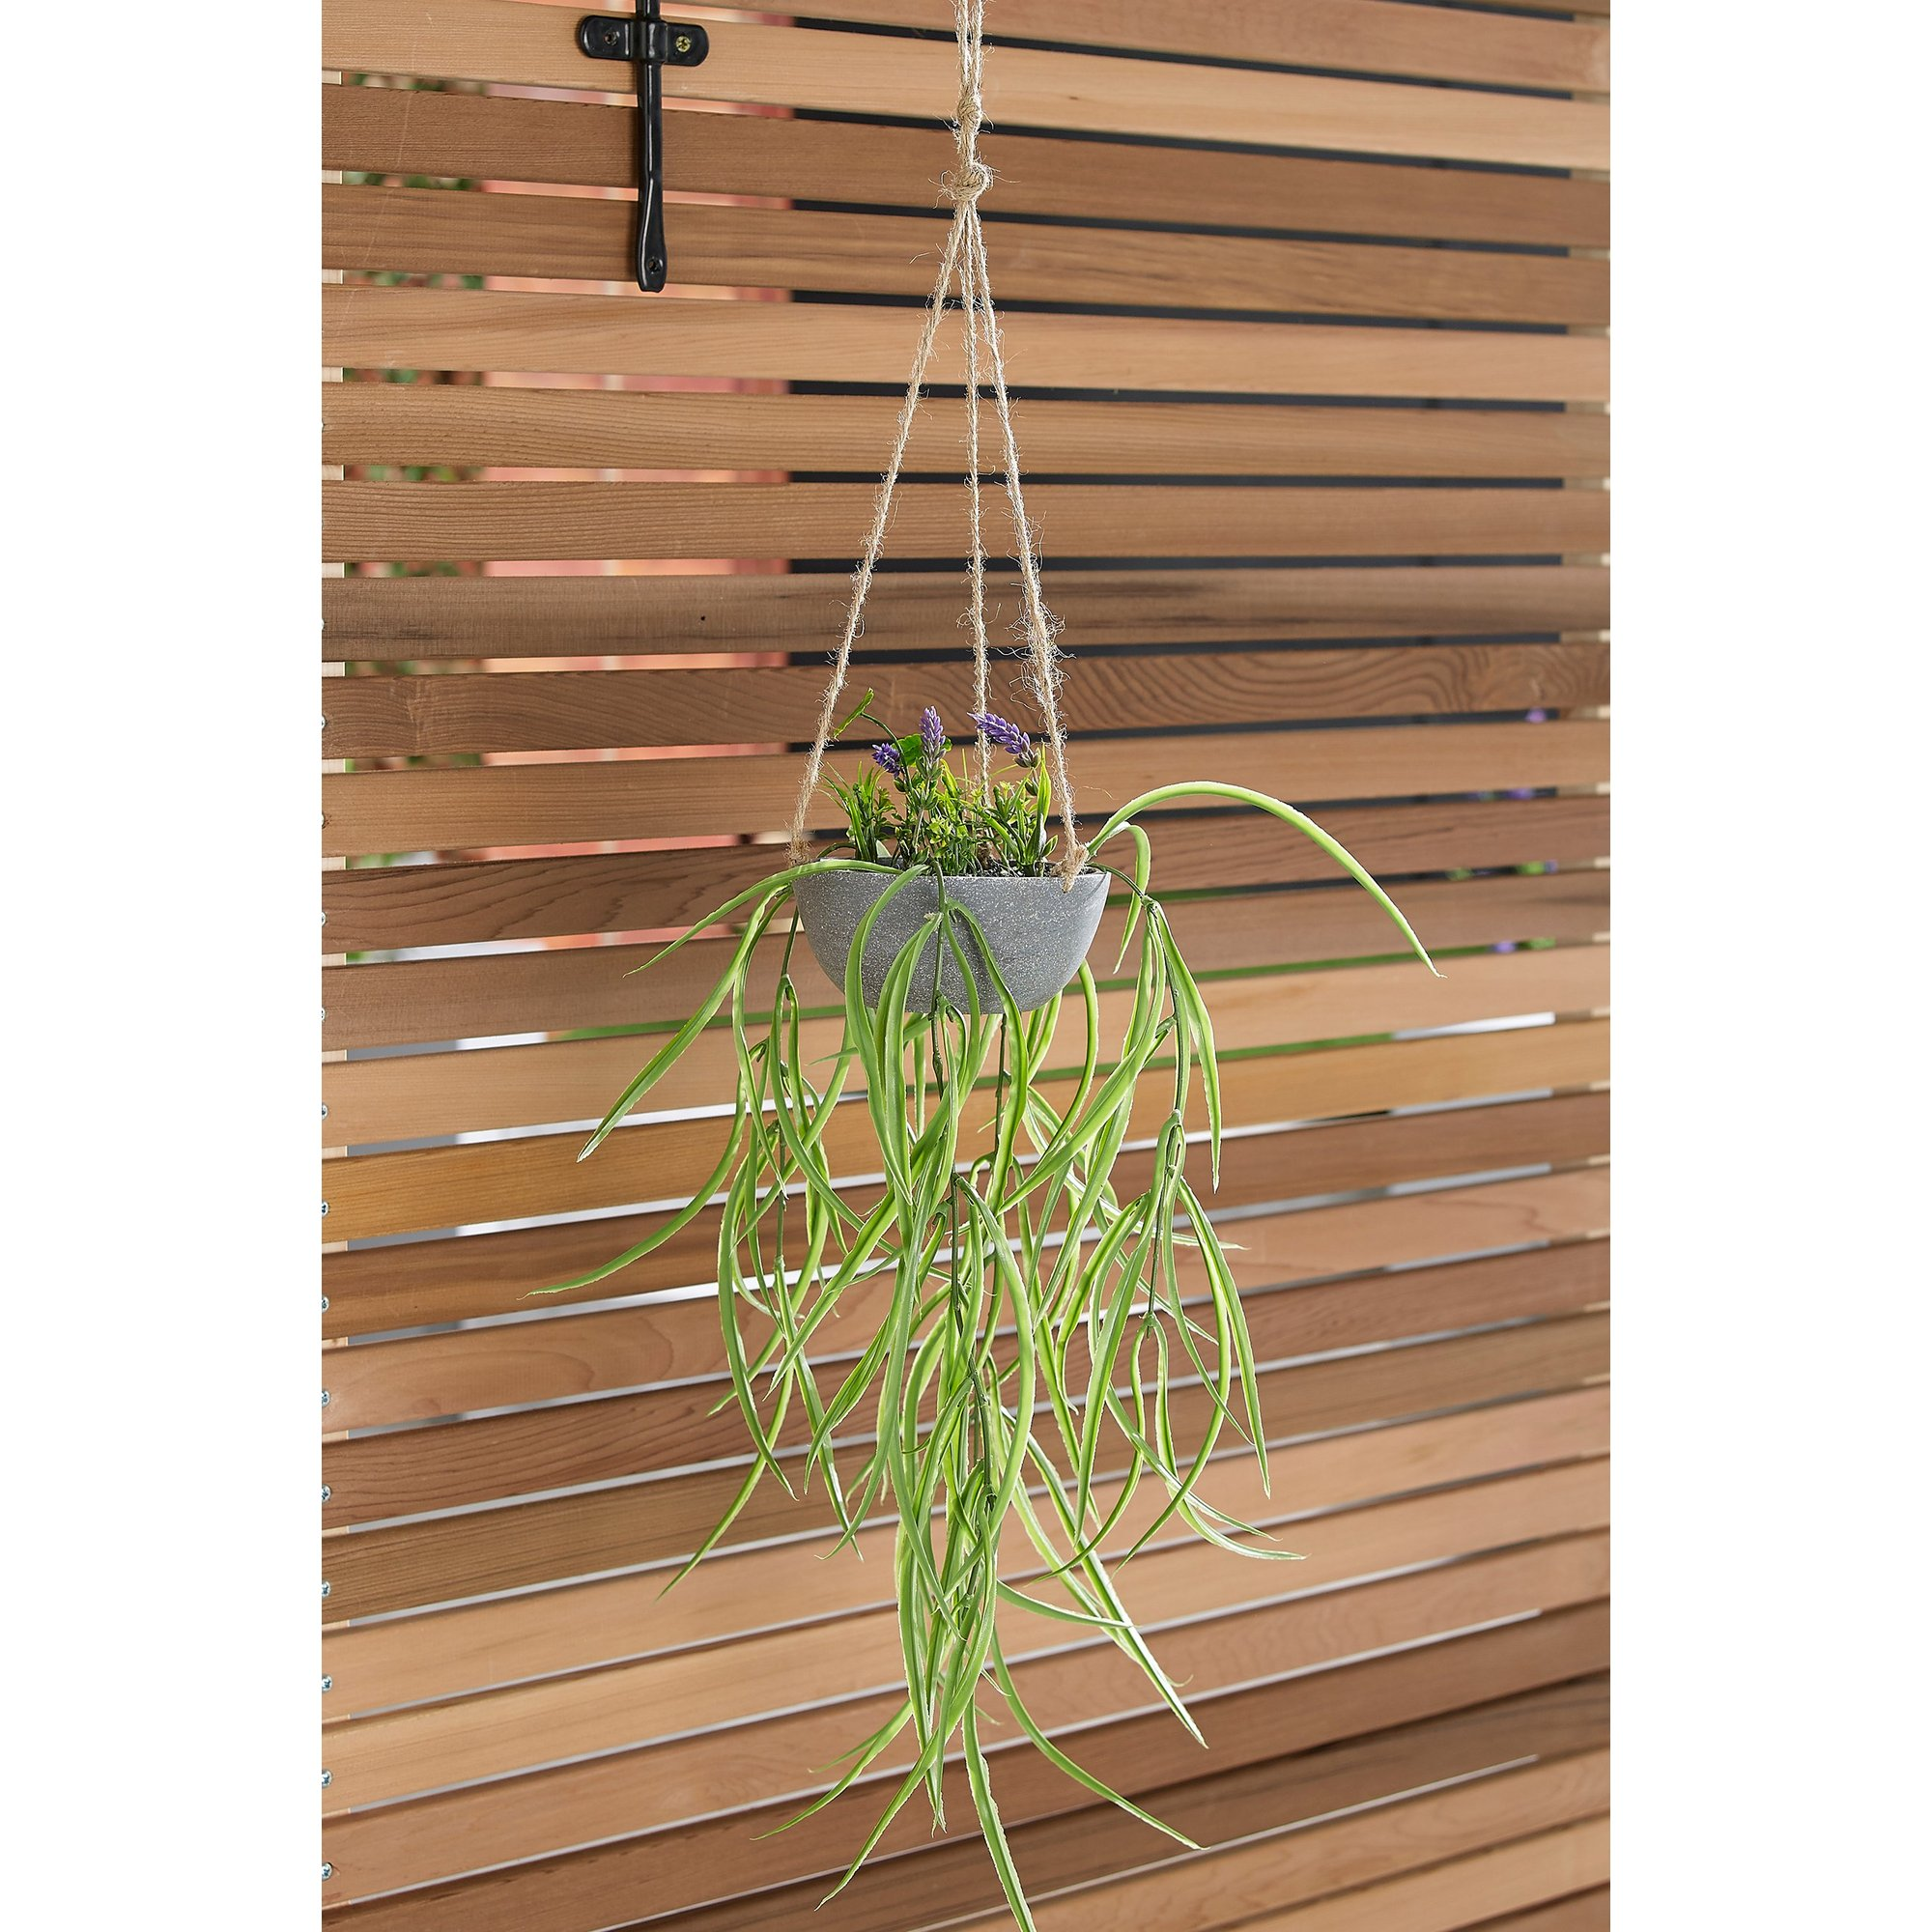 Image of Faux Sword Grass Hanging Pot Plant